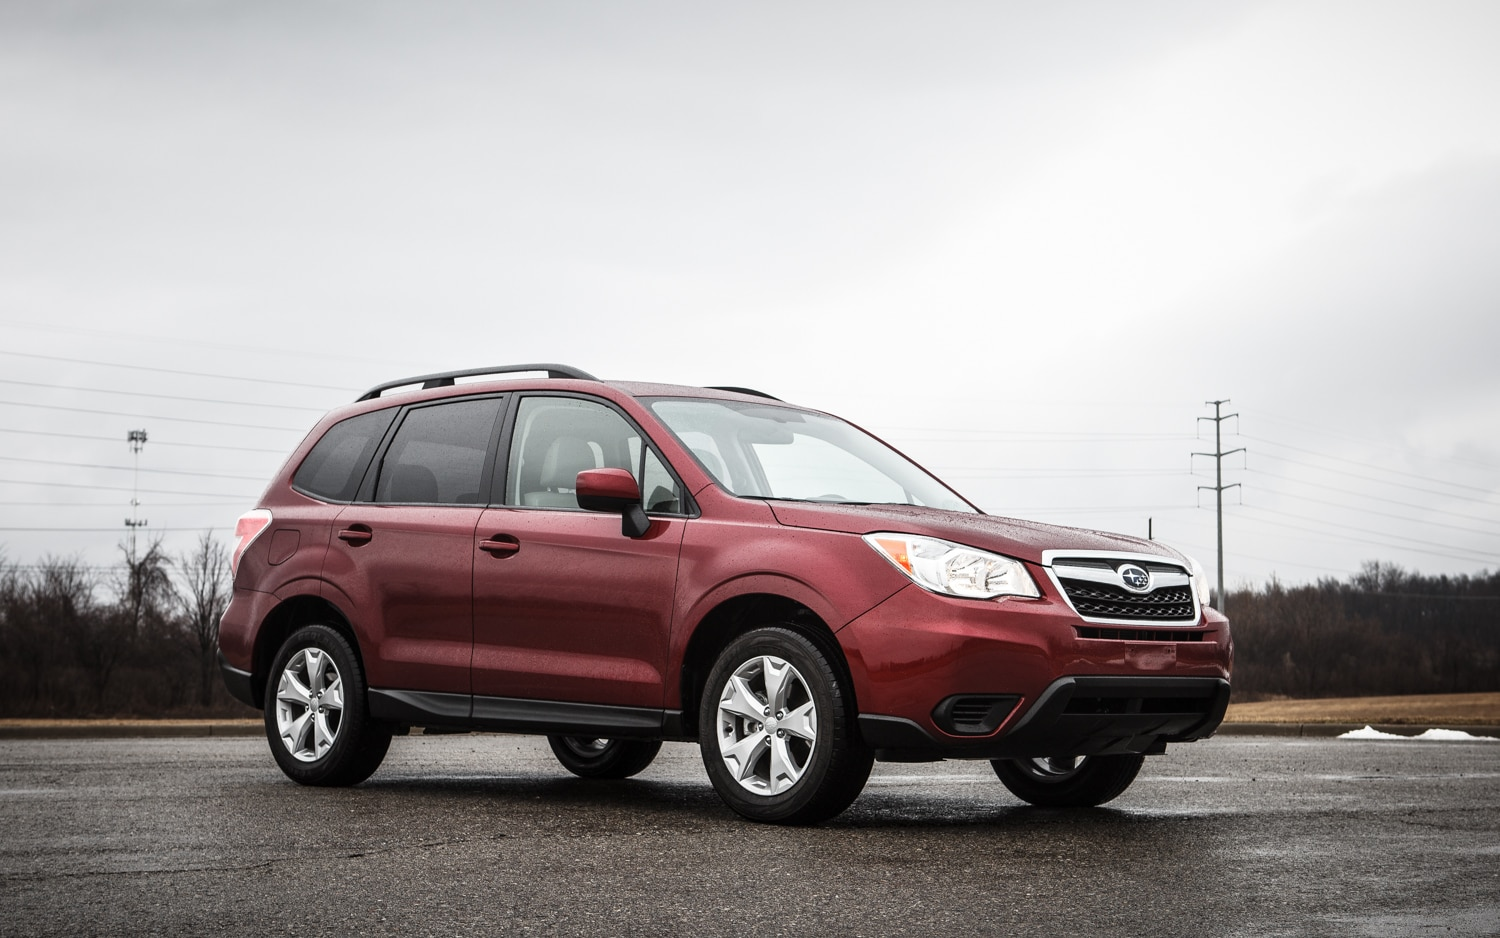 2014 Subaru Forester Manual Front Right Side View 31